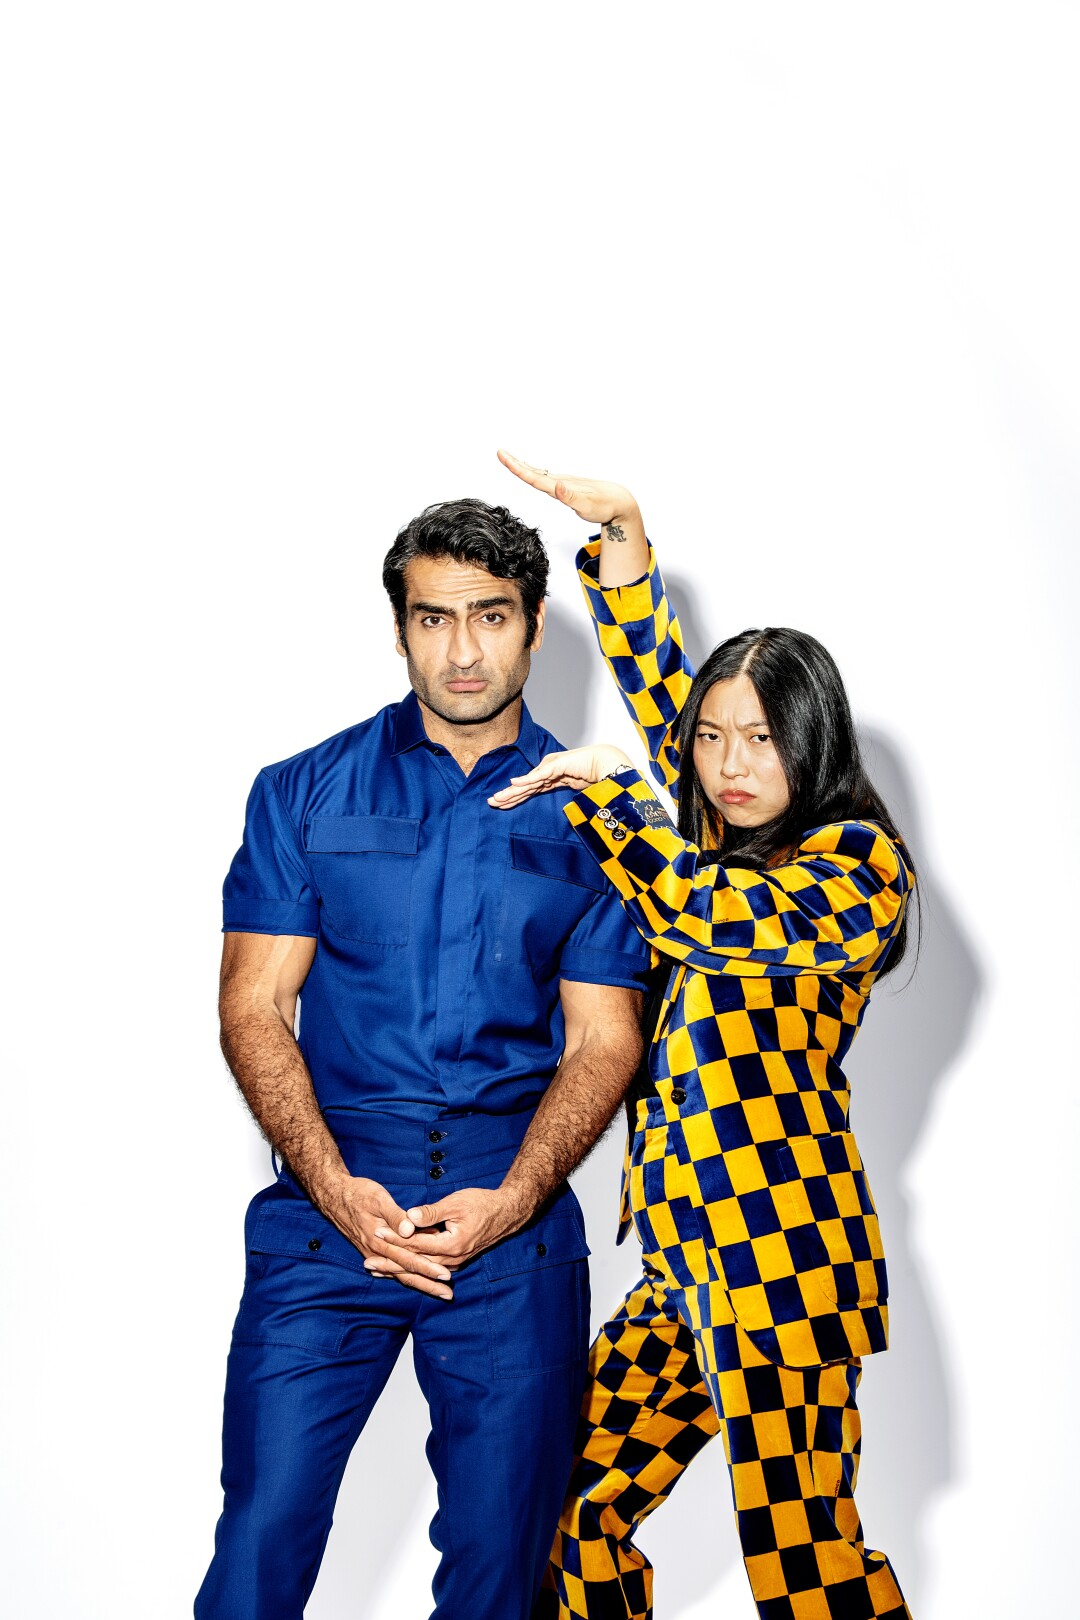 A man with dark hair in a blue outfit, left, stands next to a woman in a yellow-and-black checkered suit striking a pose